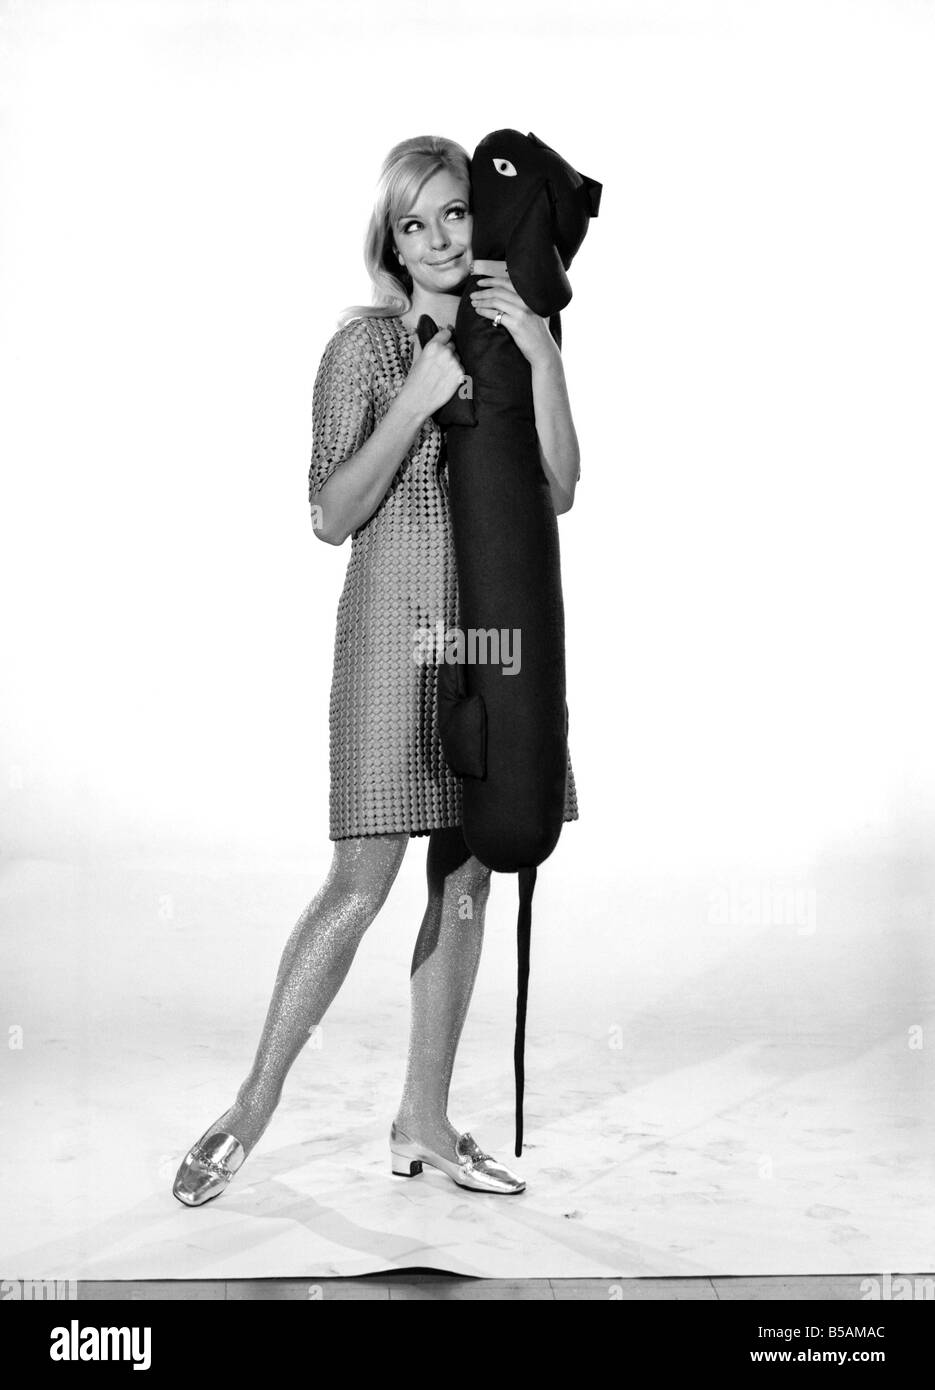 Model Anna Maria Greaves with Roly dog soft toy and draft excluder. 1959 D169-013 - Stock Image